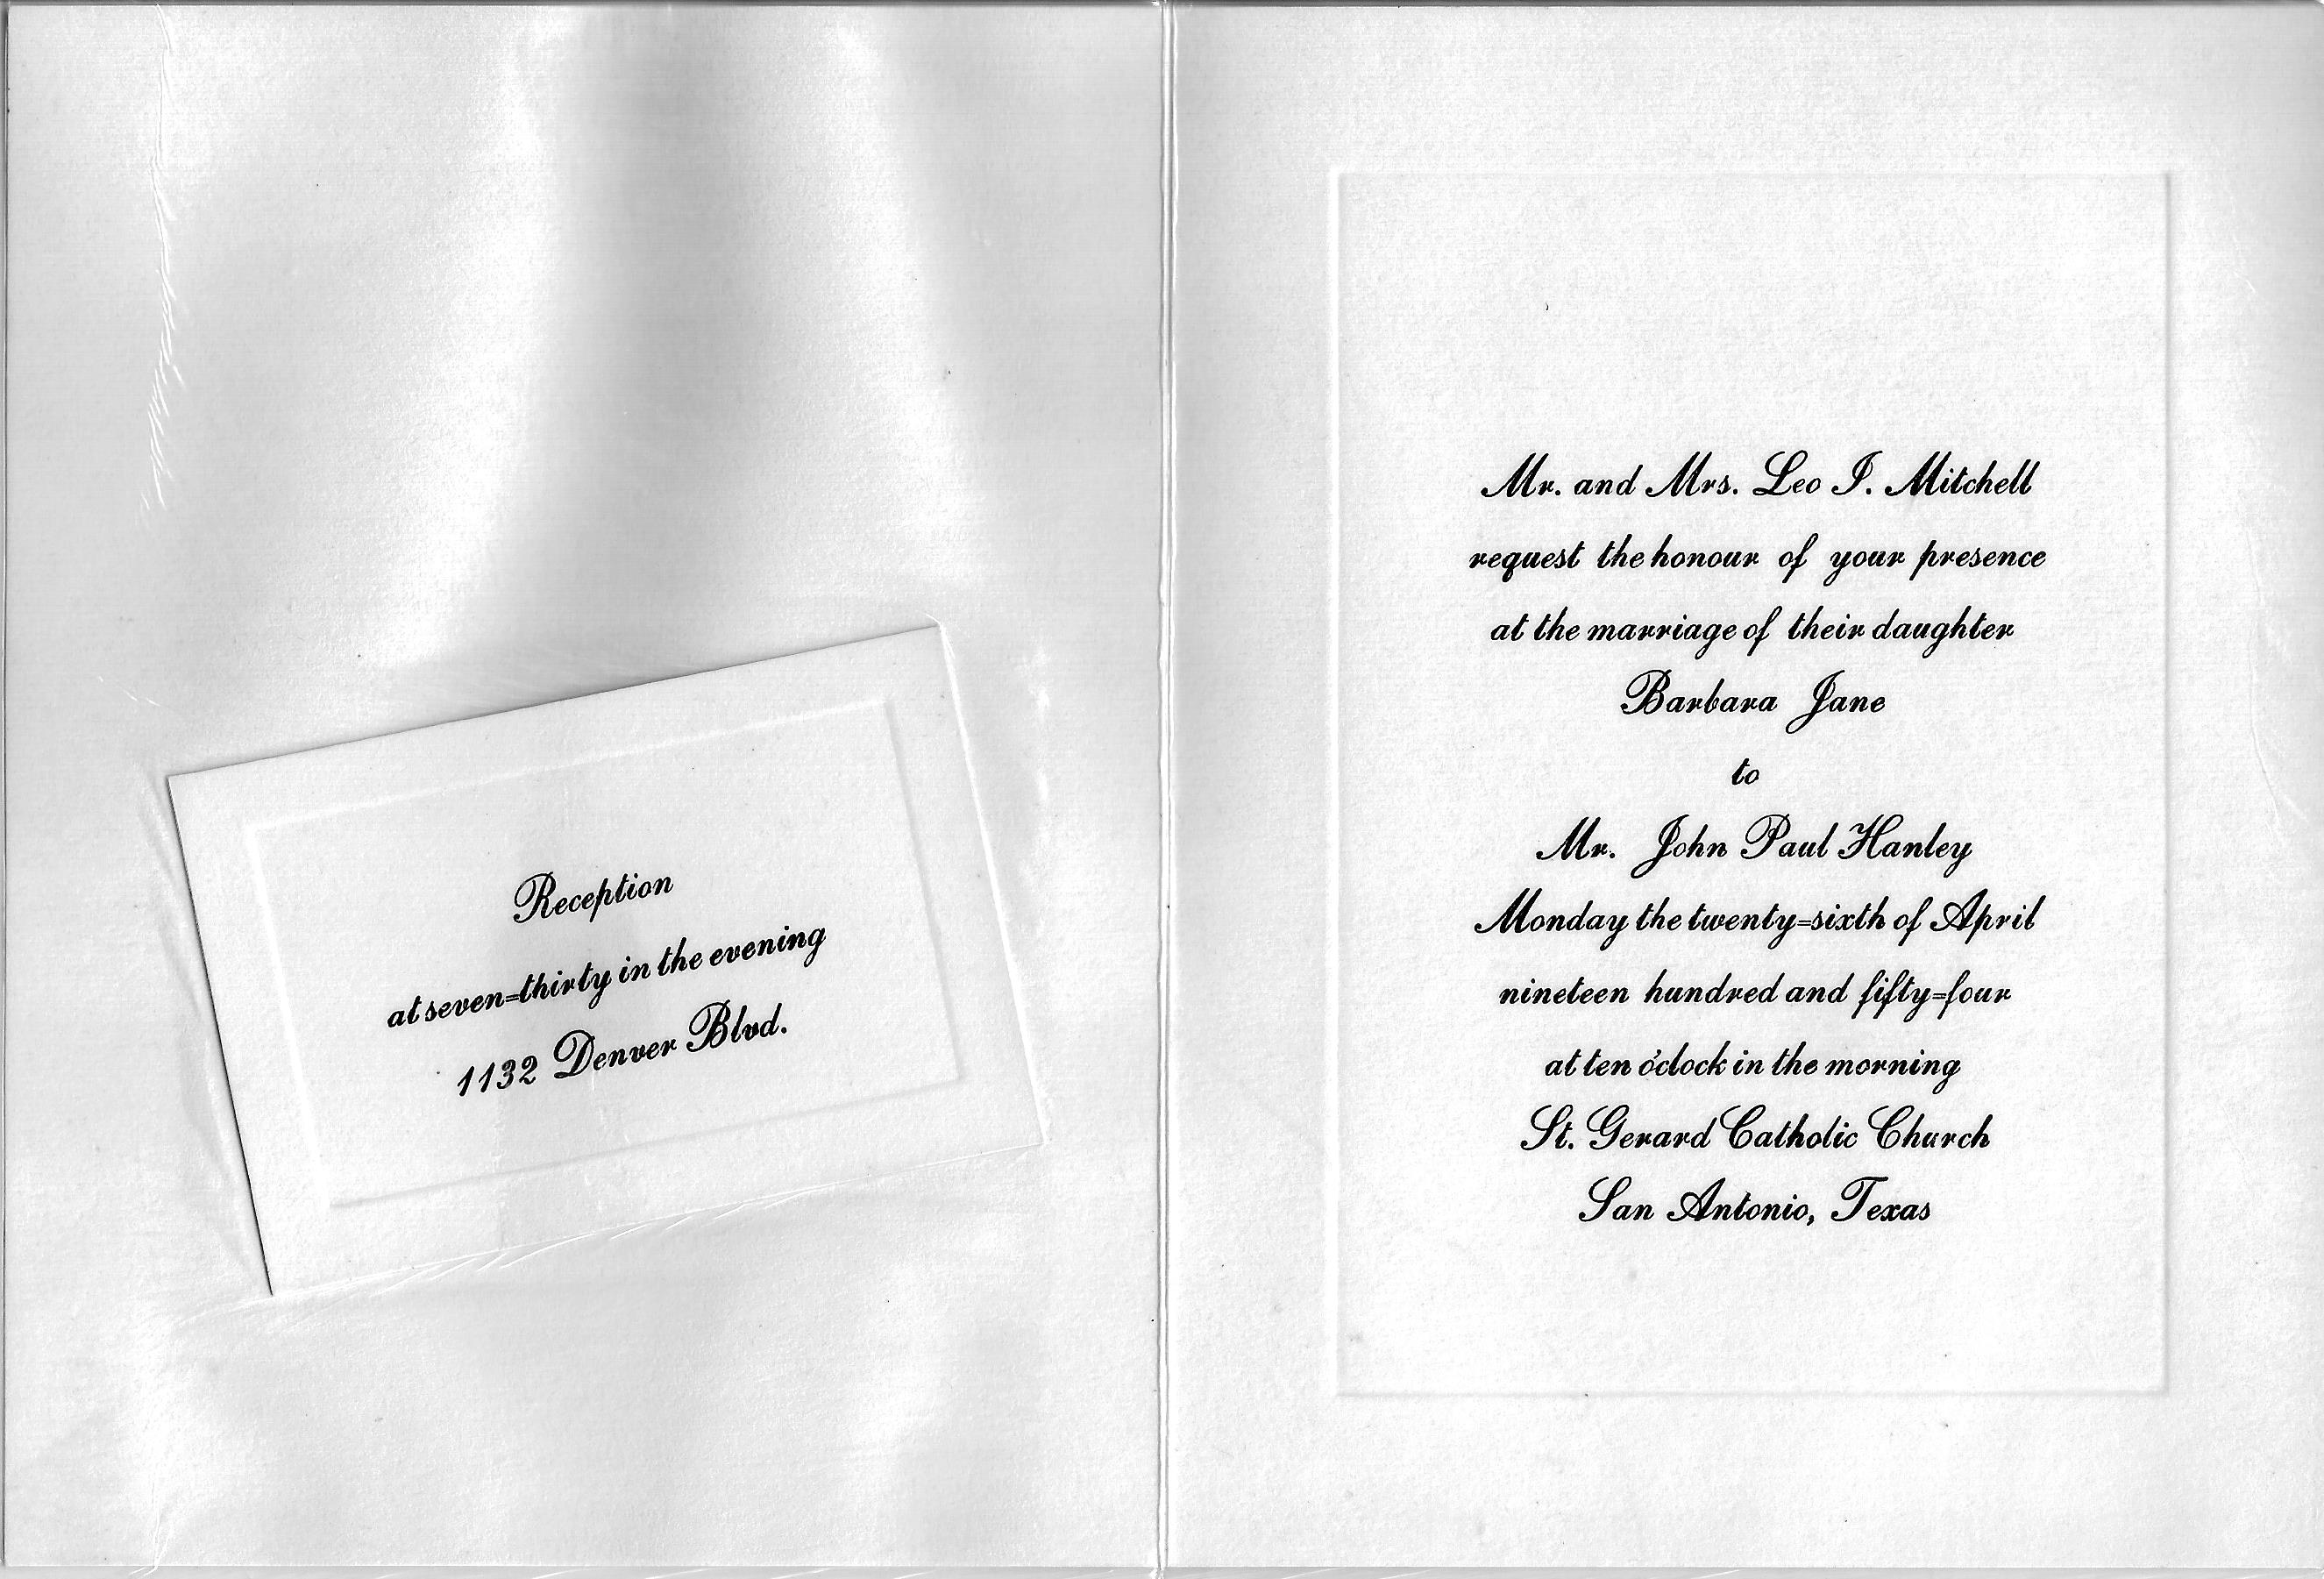 wedding invitation from 1954